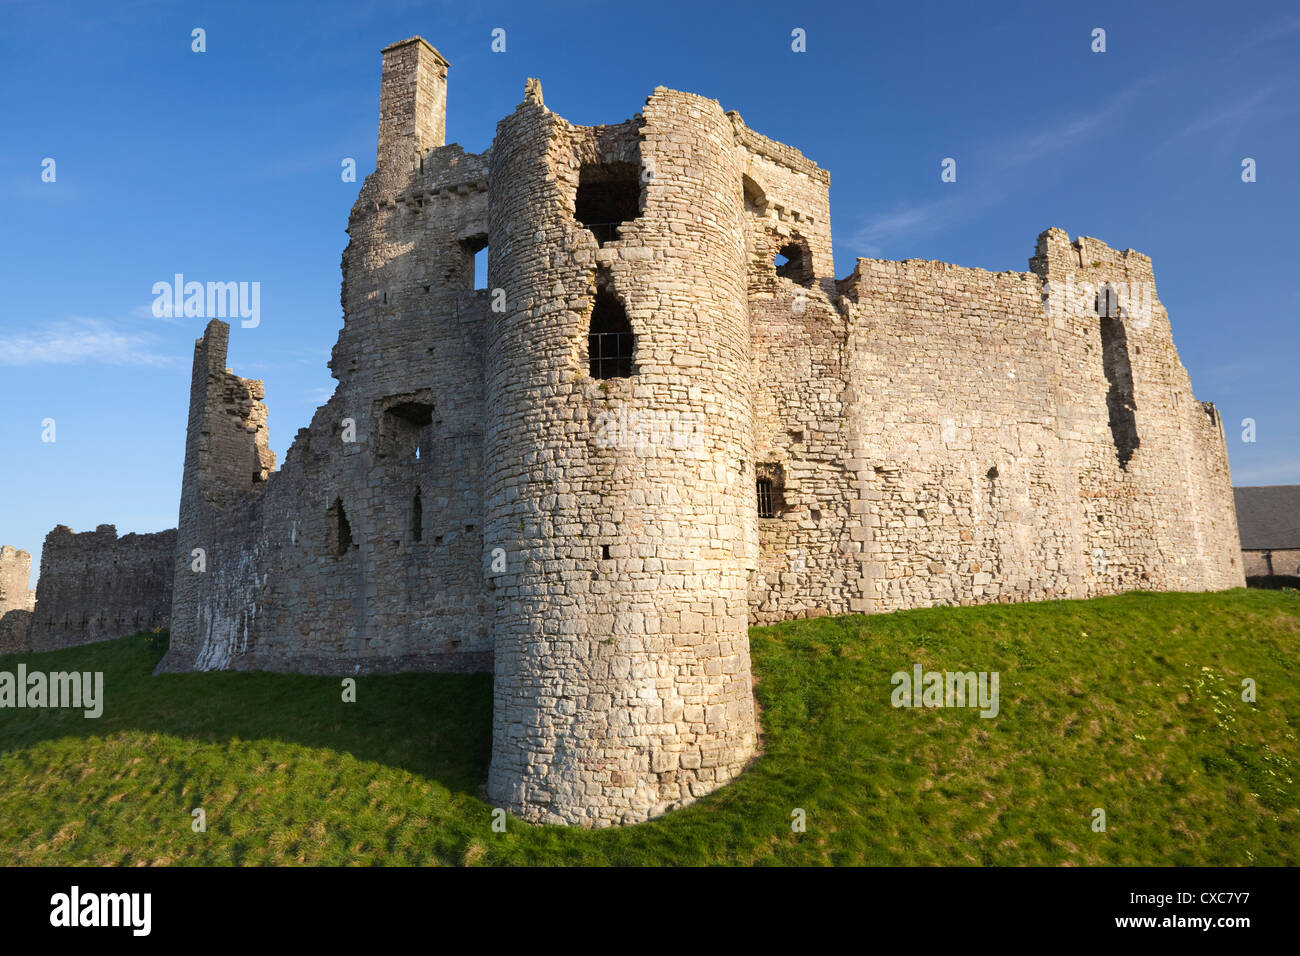 Coity (Coety) Castle, Bridgend, South Wales, Wales, United Kingdom, Europe - Stock Image